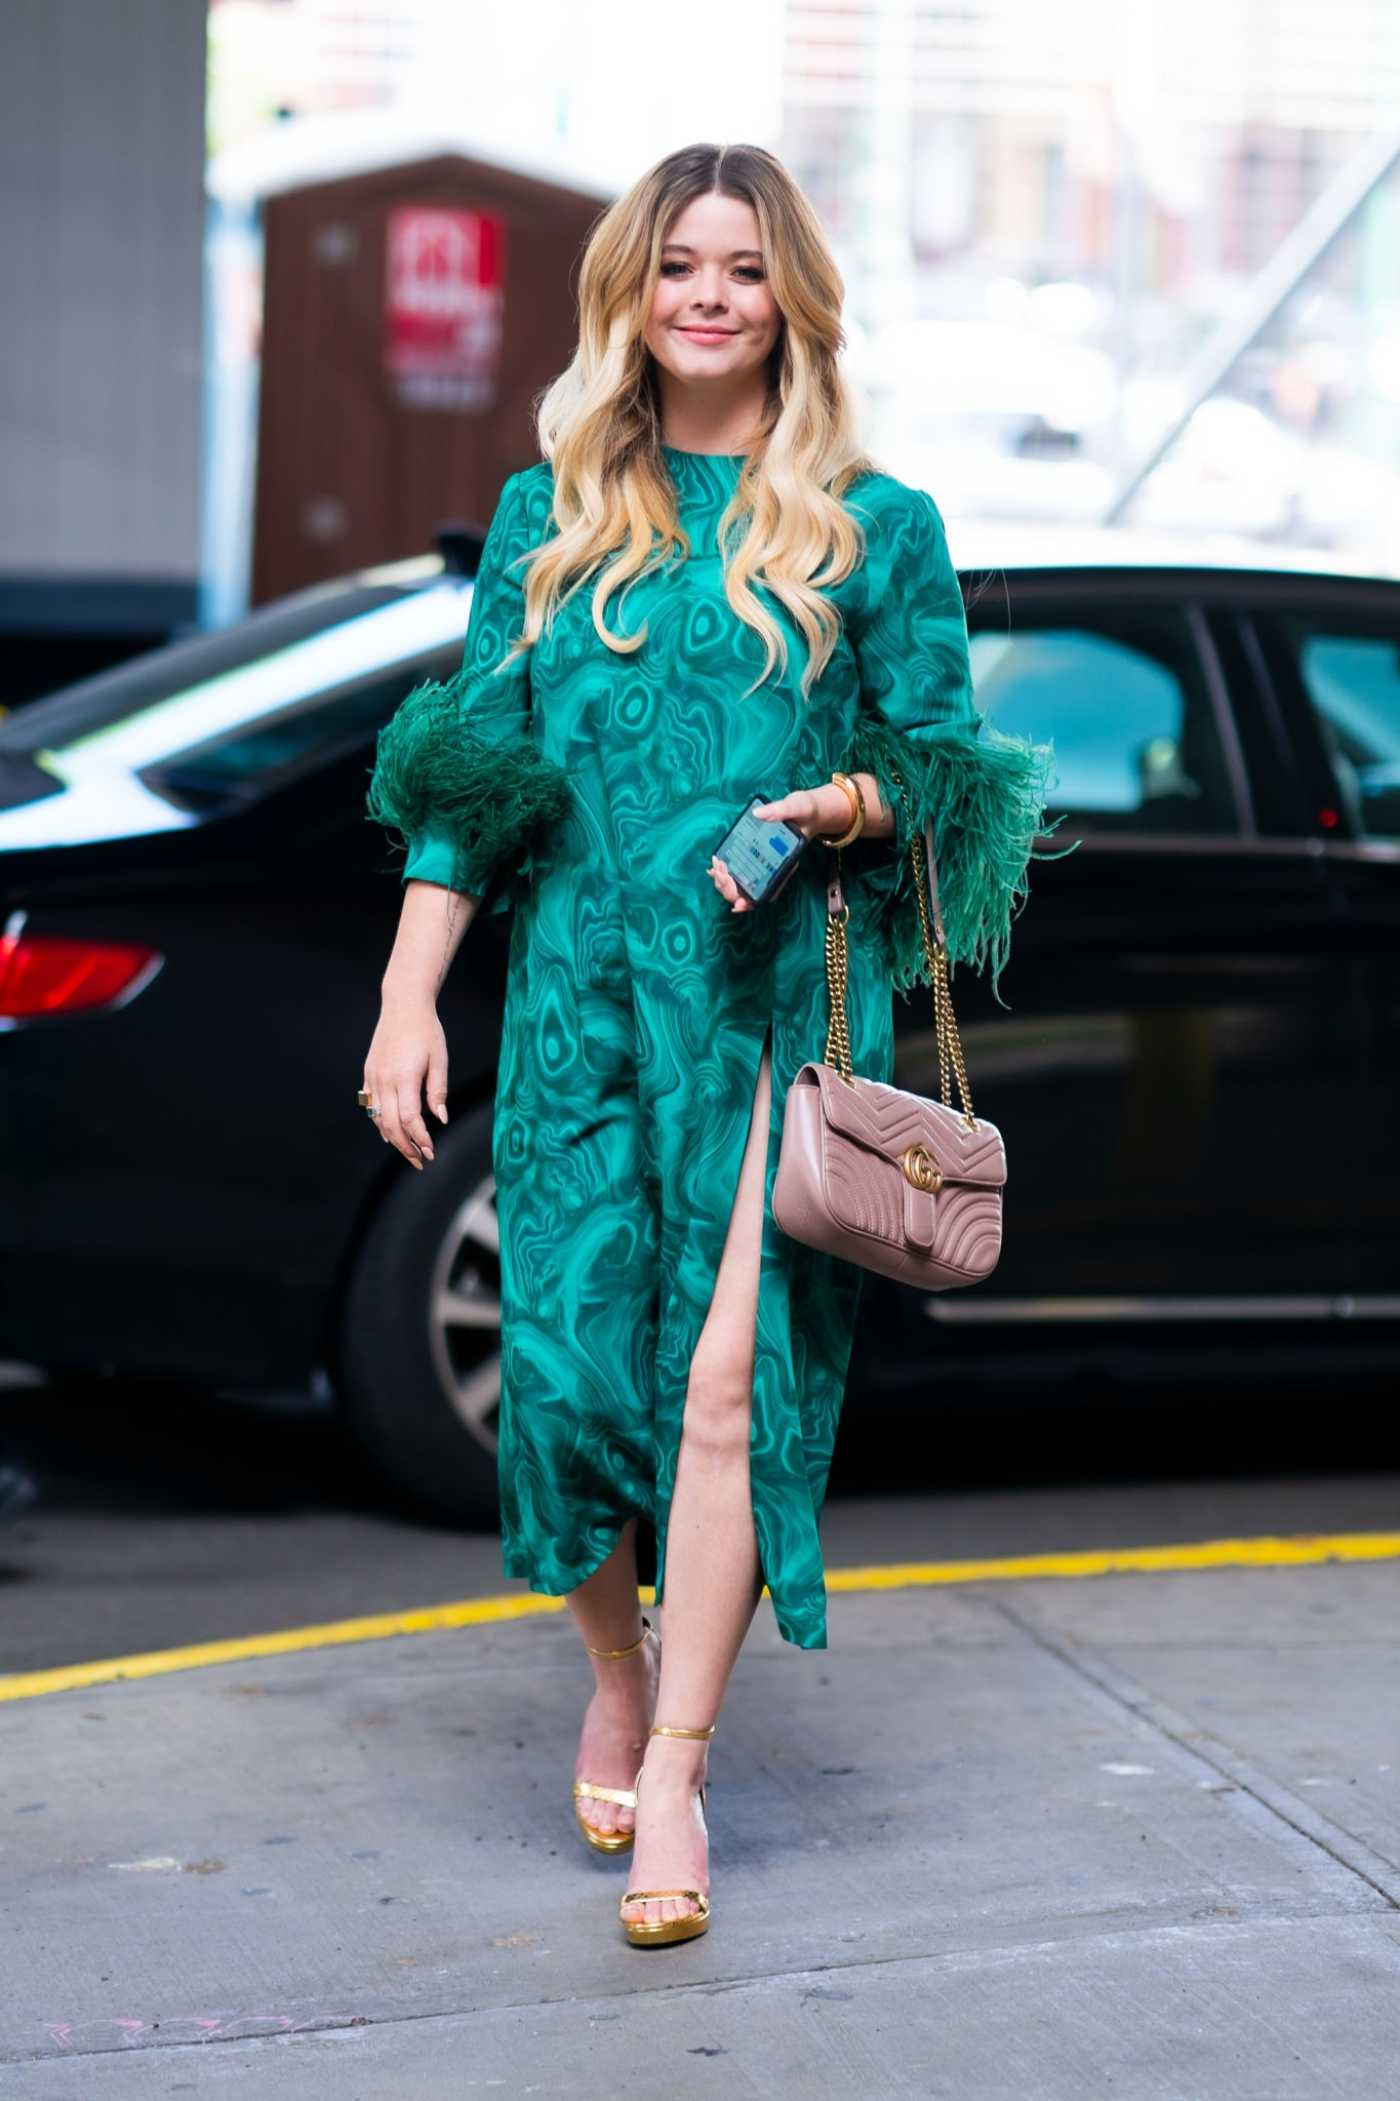 Sasha Pieterse in a Green Dress Attends 2019 POPSUGAR Play/Ground at Pier 94 in Midtown in New York City 06/22/2019